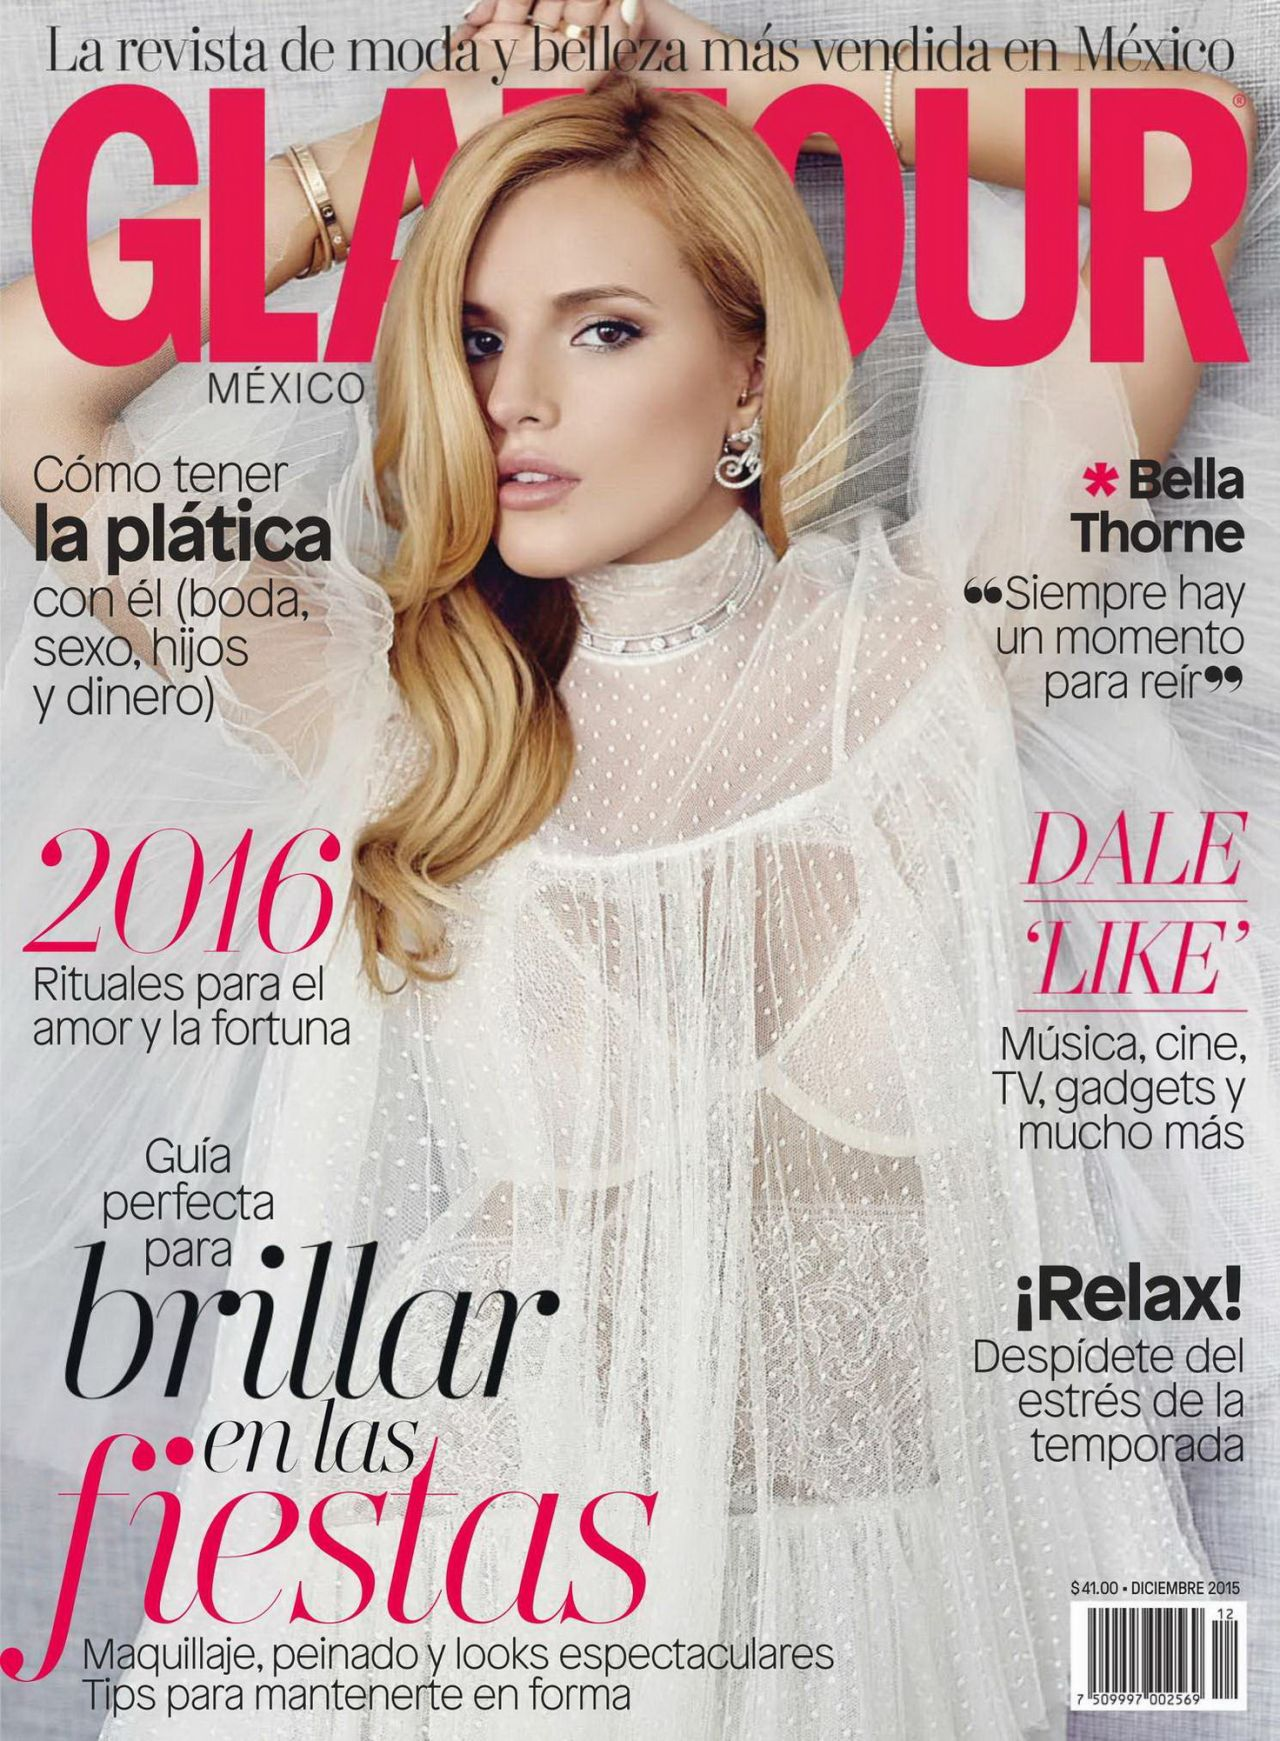 Editorial Glamour Makeup Professional Makeup Artist: Glamour Magazine Mexico December 2015 Issue